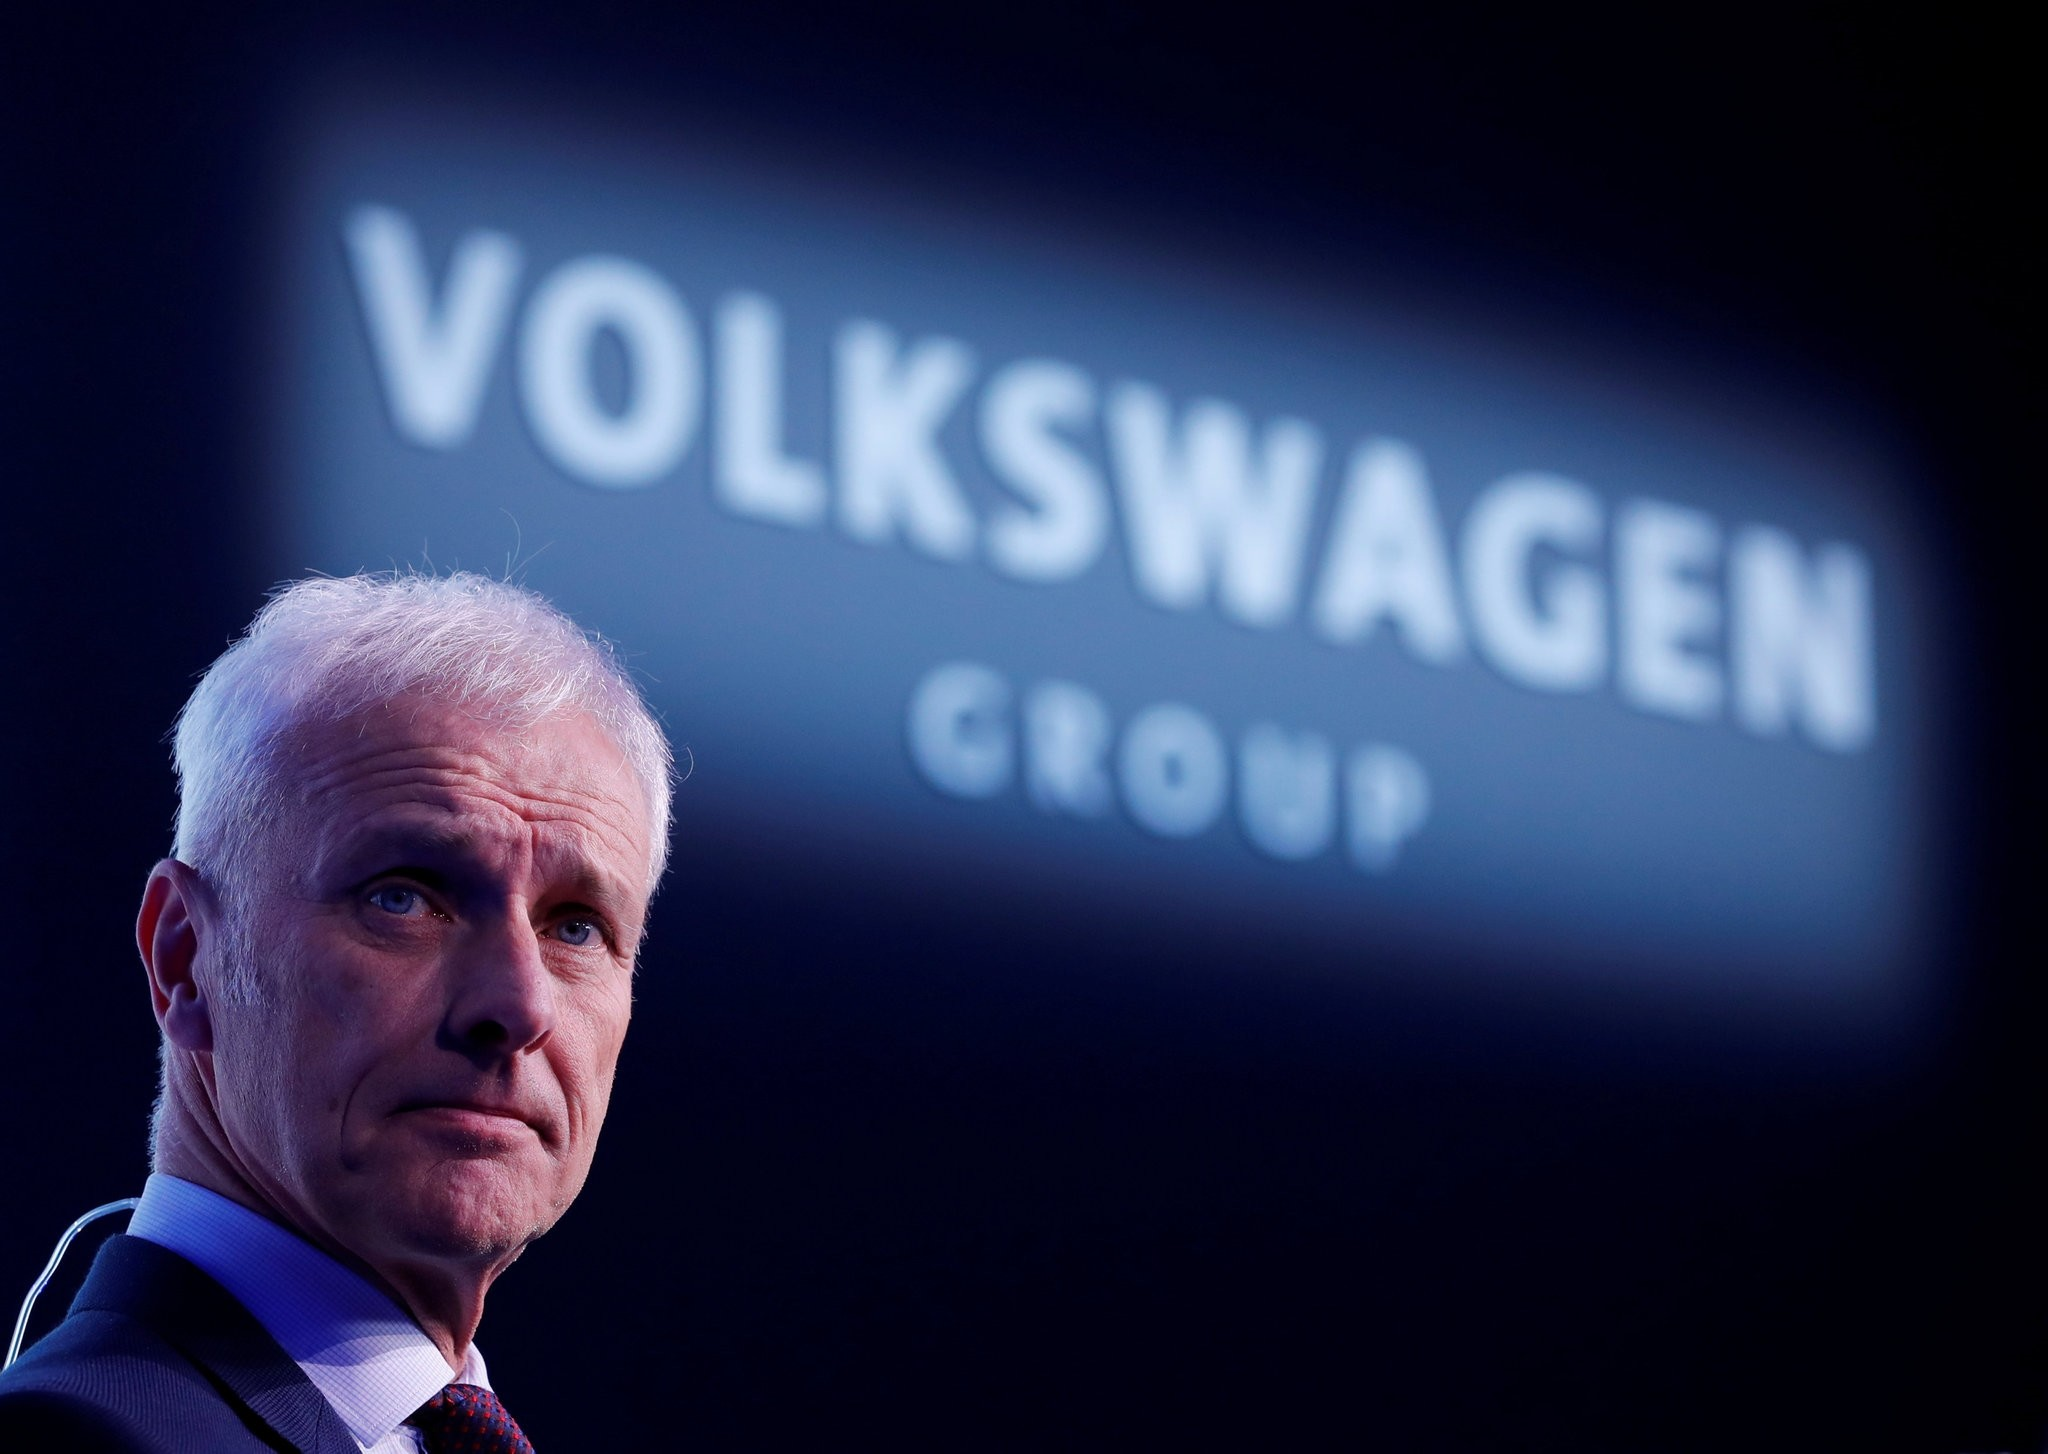 Volkswagen CEO Matthias Mueller poses for a photograph after an interview with Reuters ahead of the 88th International Motor Show at Palexpo in Geneva, Switzerland, March 5, 2018. (REUTERS Photo)